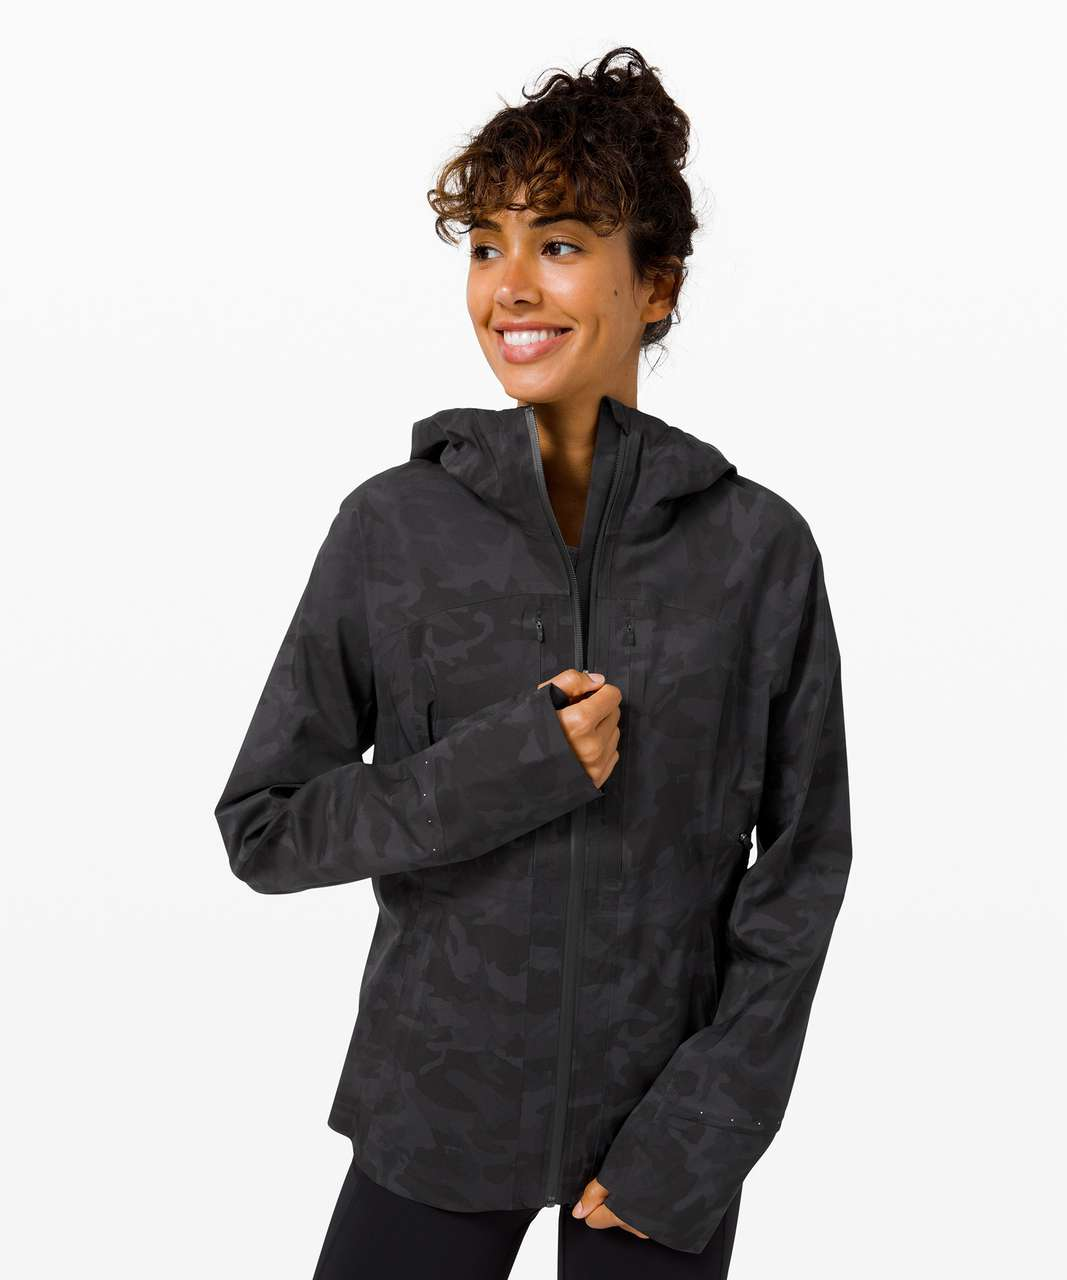 Lululemon Break a Trail Jacket - Incognito Camo Multi Grey